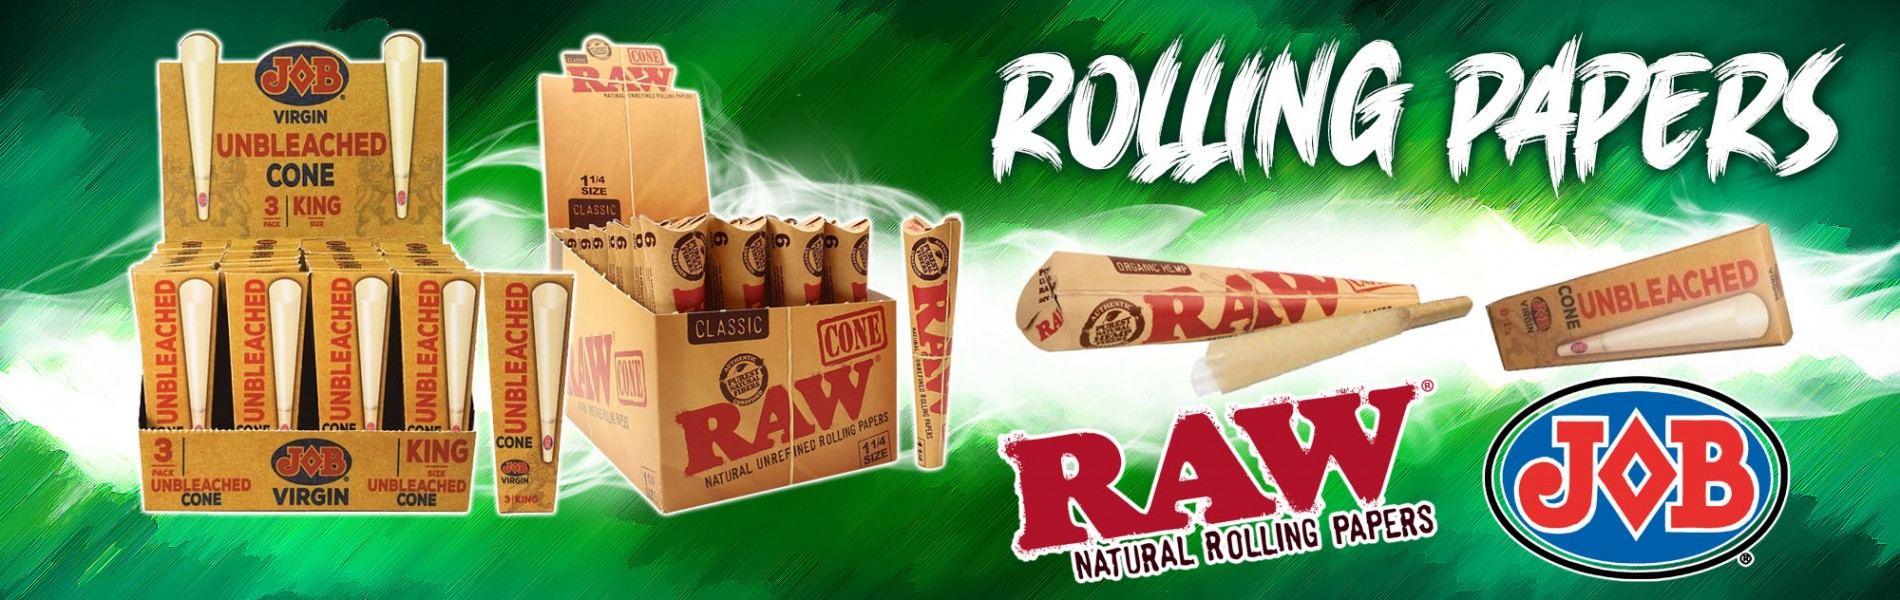 Raw and Job Rolling Paper Cones